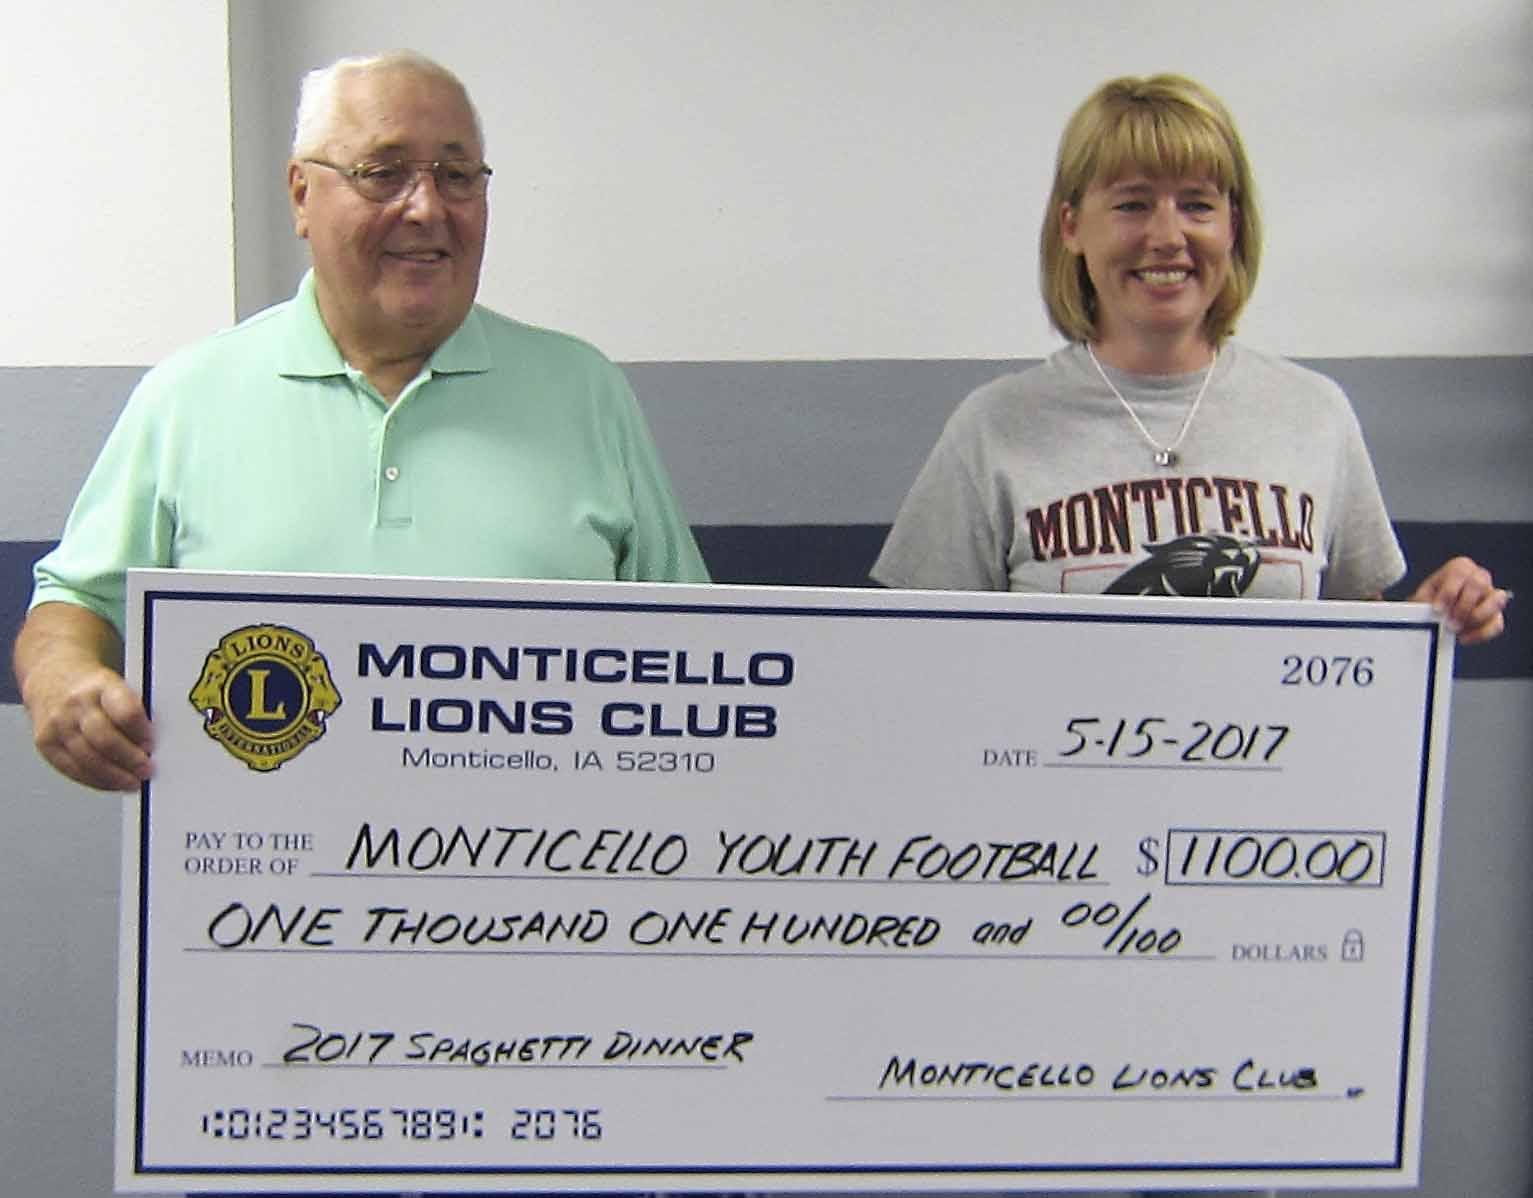 Lion Fred Williams presents Carrie Yates, Monticello Youth Football coordinator, with the MYF share of the 2017 Lions Spaghetti Dinner. The check was part of the proceeds from the April 27 Spaghetti Dinner held by the Monticello Lions Club with the assistance of the MYF players and parents. (Photo submitted)